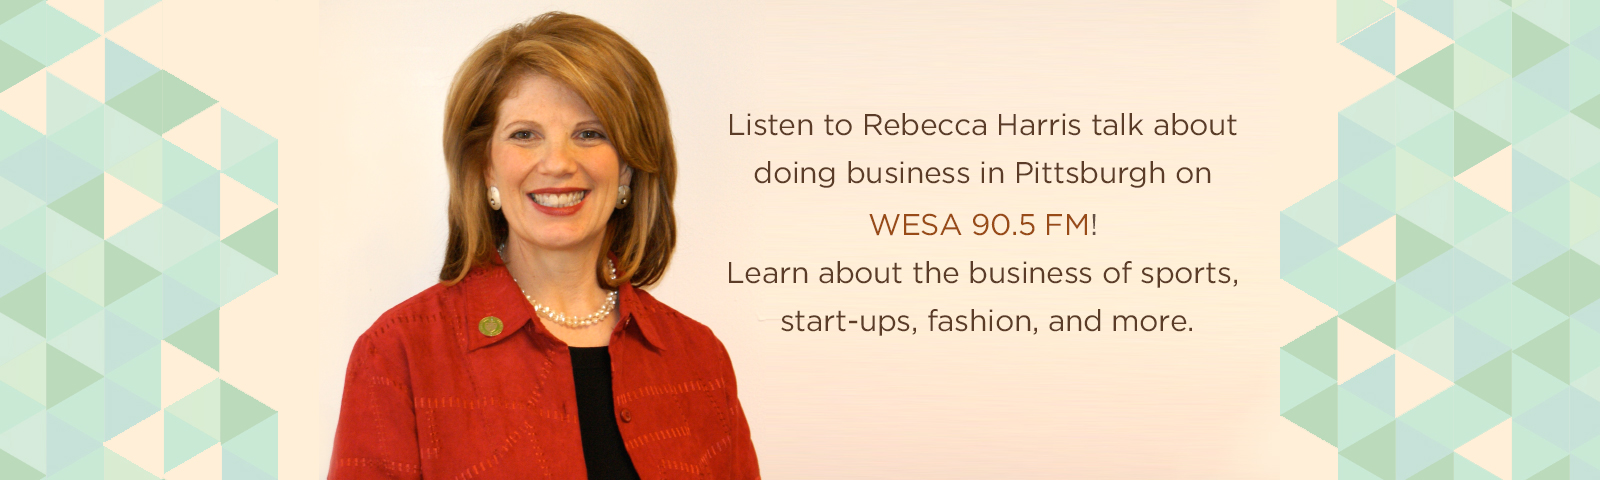 Listen to Rebecca Harris talk about doing business in Pittsburgh on WESA 90.5 FM! Learn about the business of sports, start-ups, fashion, and more.